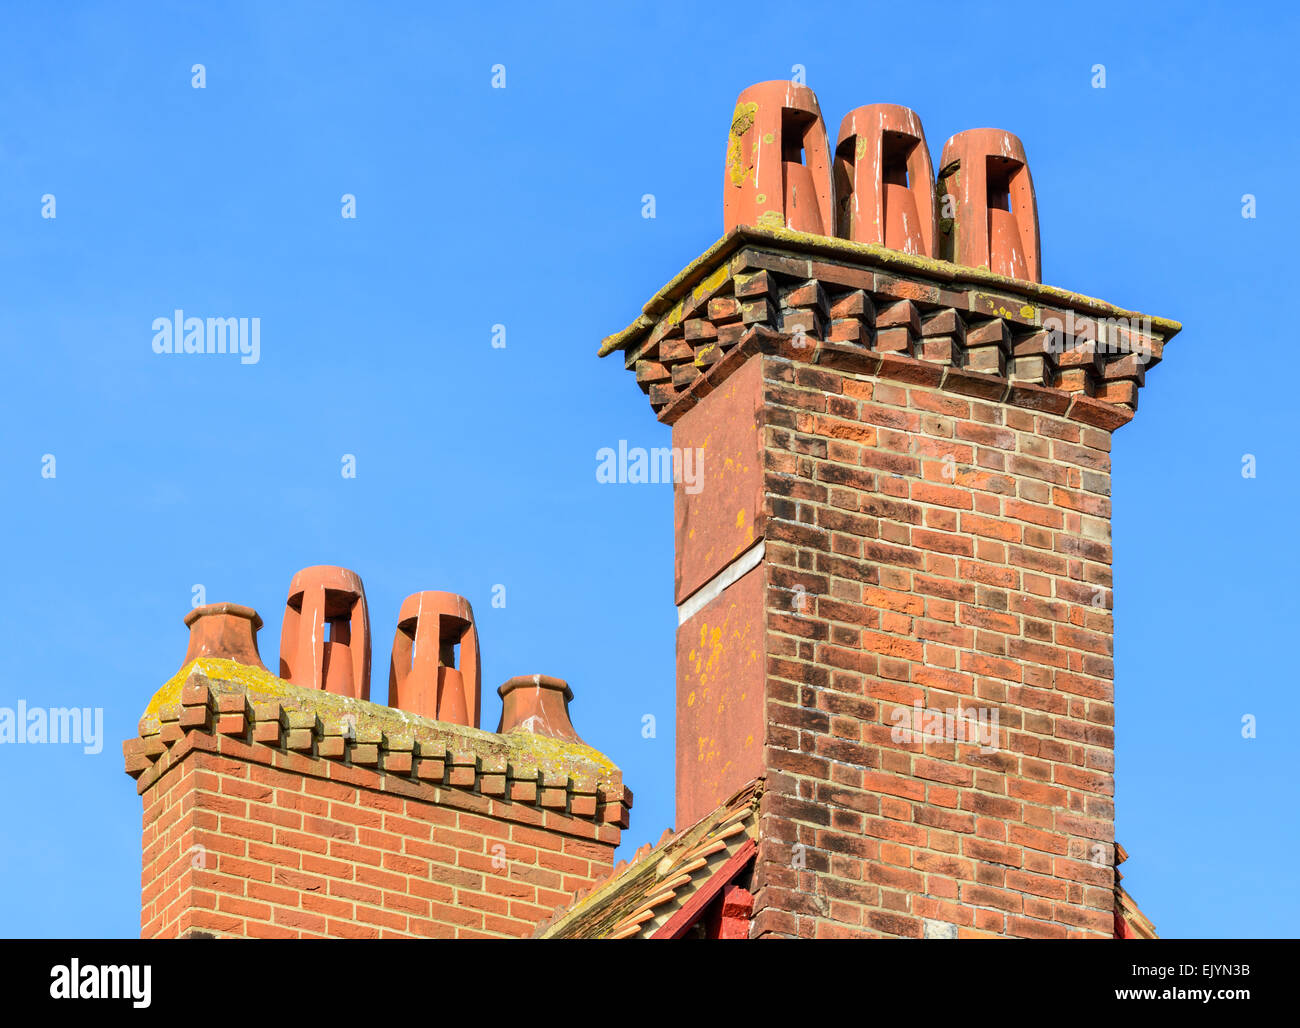 2 red brick chimney stacks with red chimney pots against blue sky in England, UK. - Stock Image